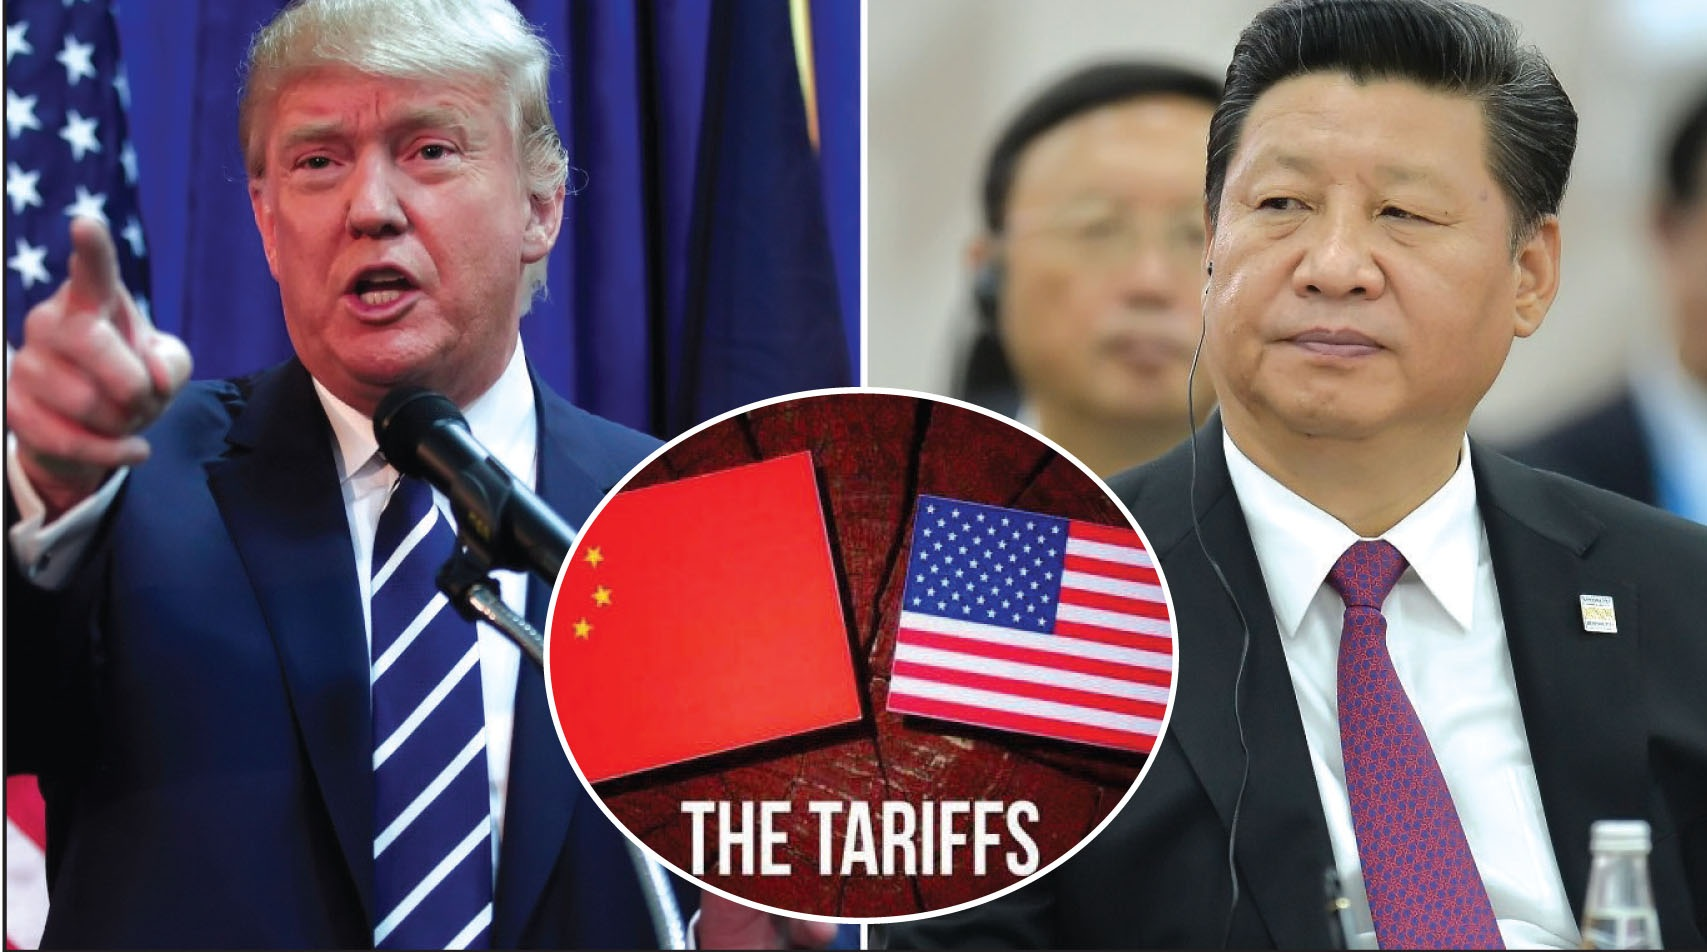 US may further intensify Trade War against China by hiking tariffs to 25% on $200-bn of Chinese imports